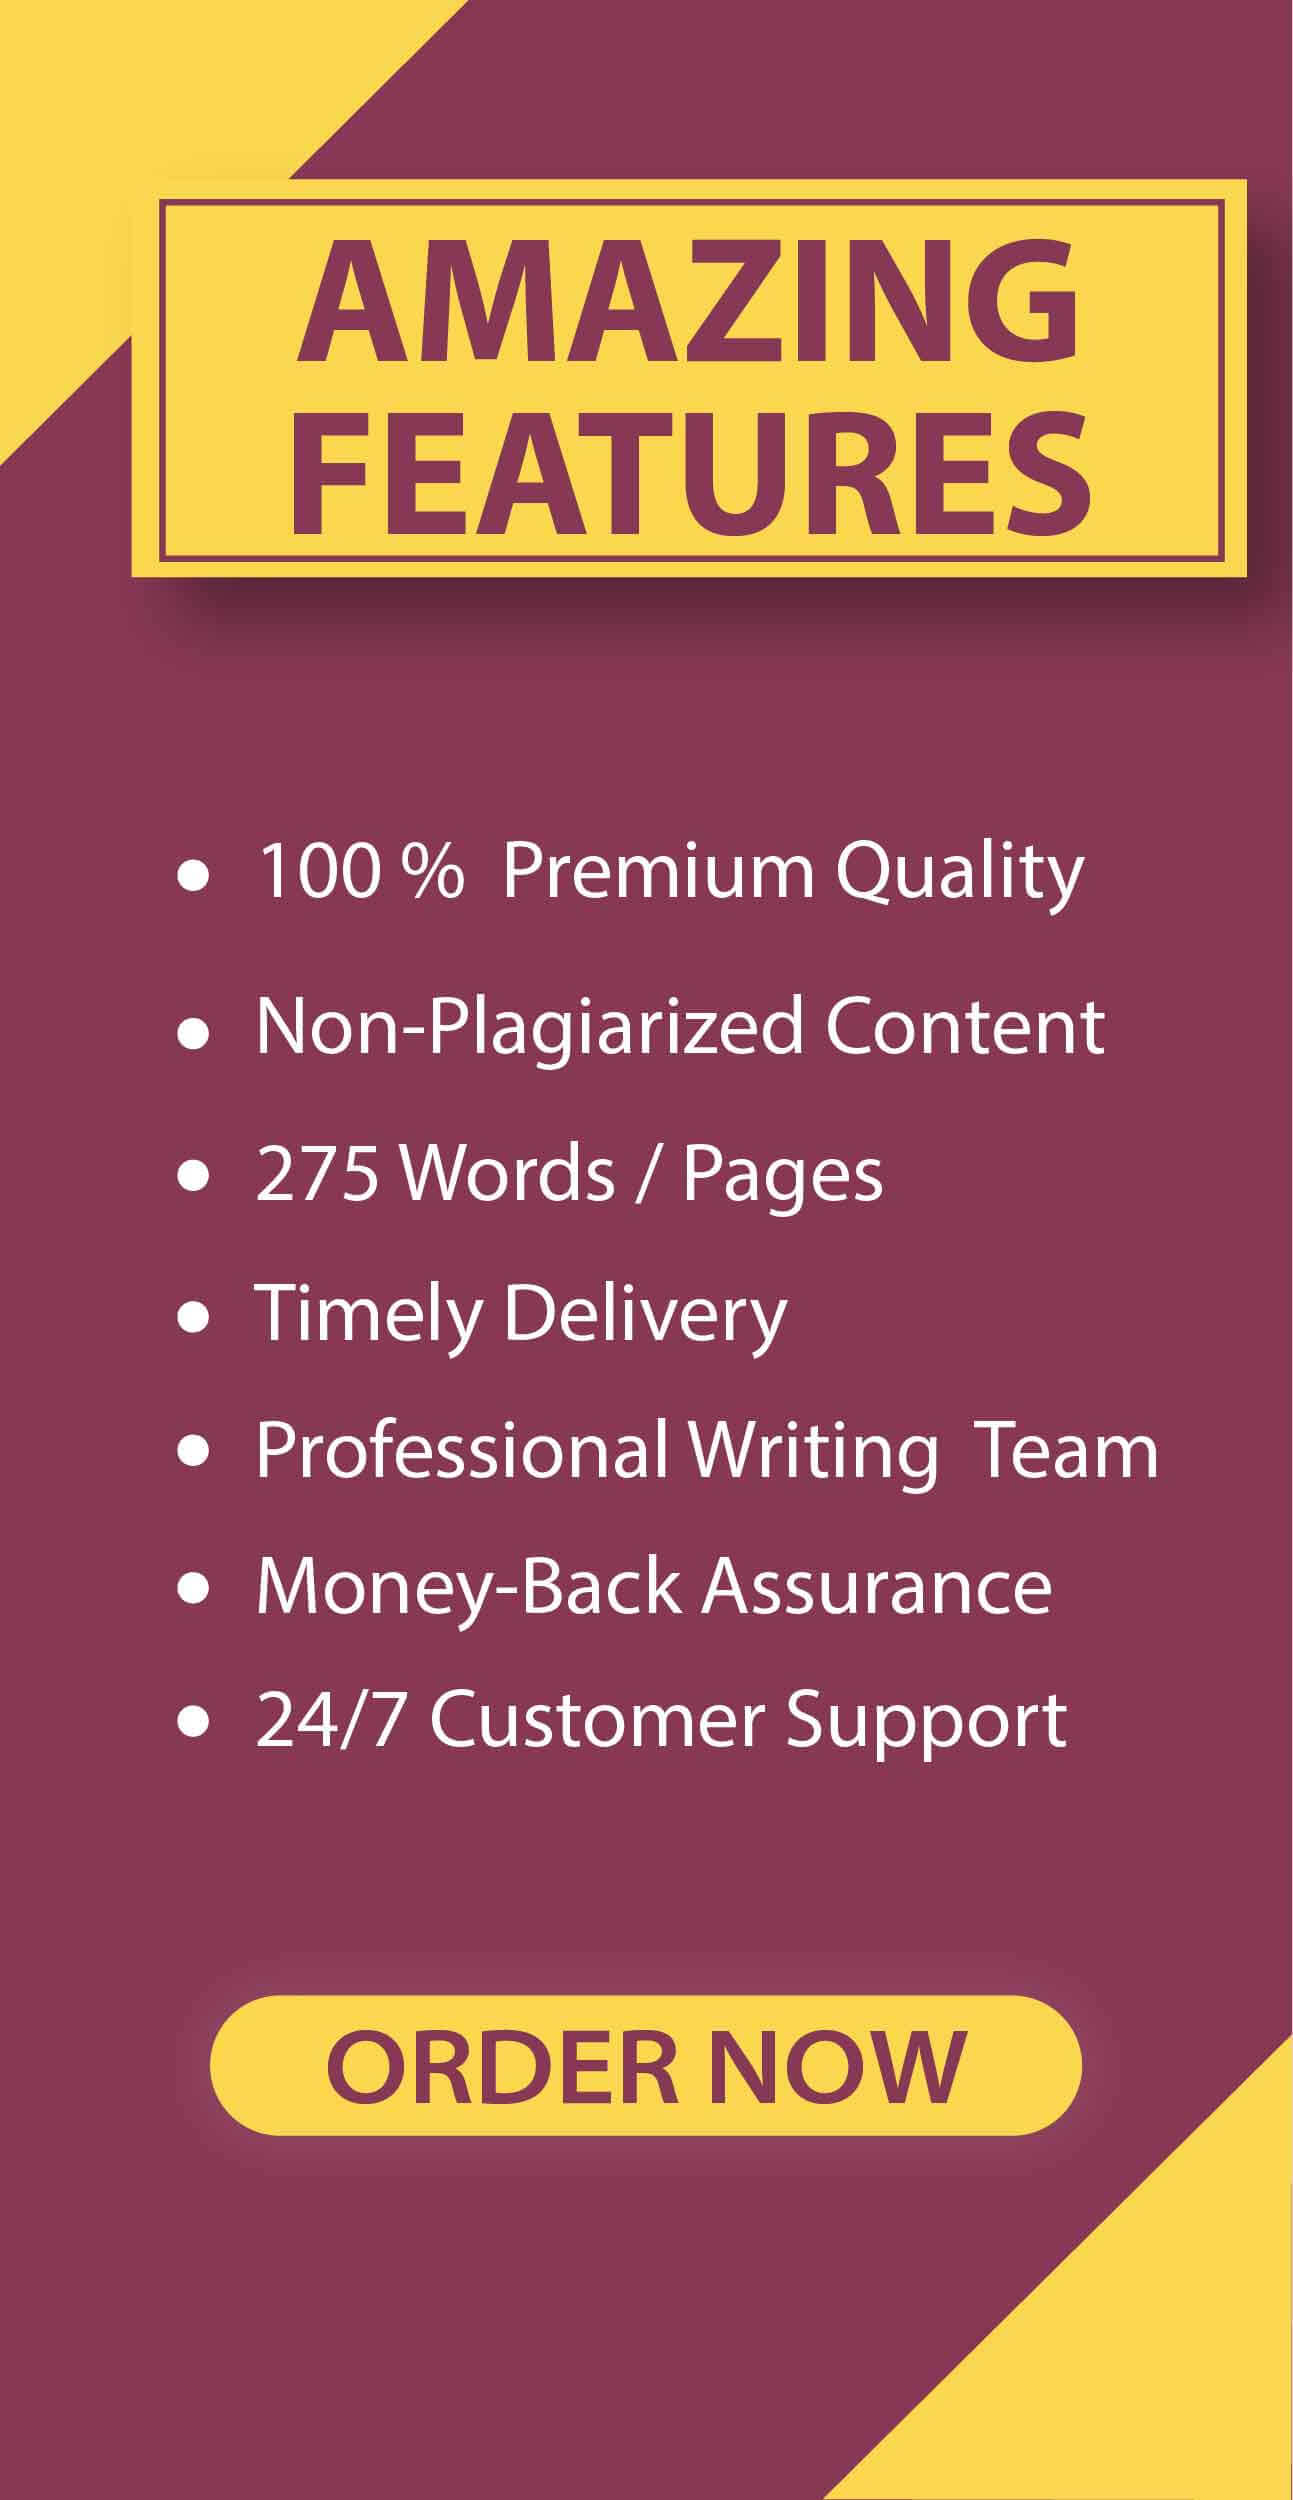 Thesis Statement Narrative Essay Thus We Can Say That Our Team Makes Us The Best Website For Essays Hire  Us And Get Ready To Receive The Best Services That You Can Find Online High School Scholarship Essay Examples also Science Fiction Essay Topics Best Website For Essays  Buy Essay From Qualified Writers Essays On Business Ethics